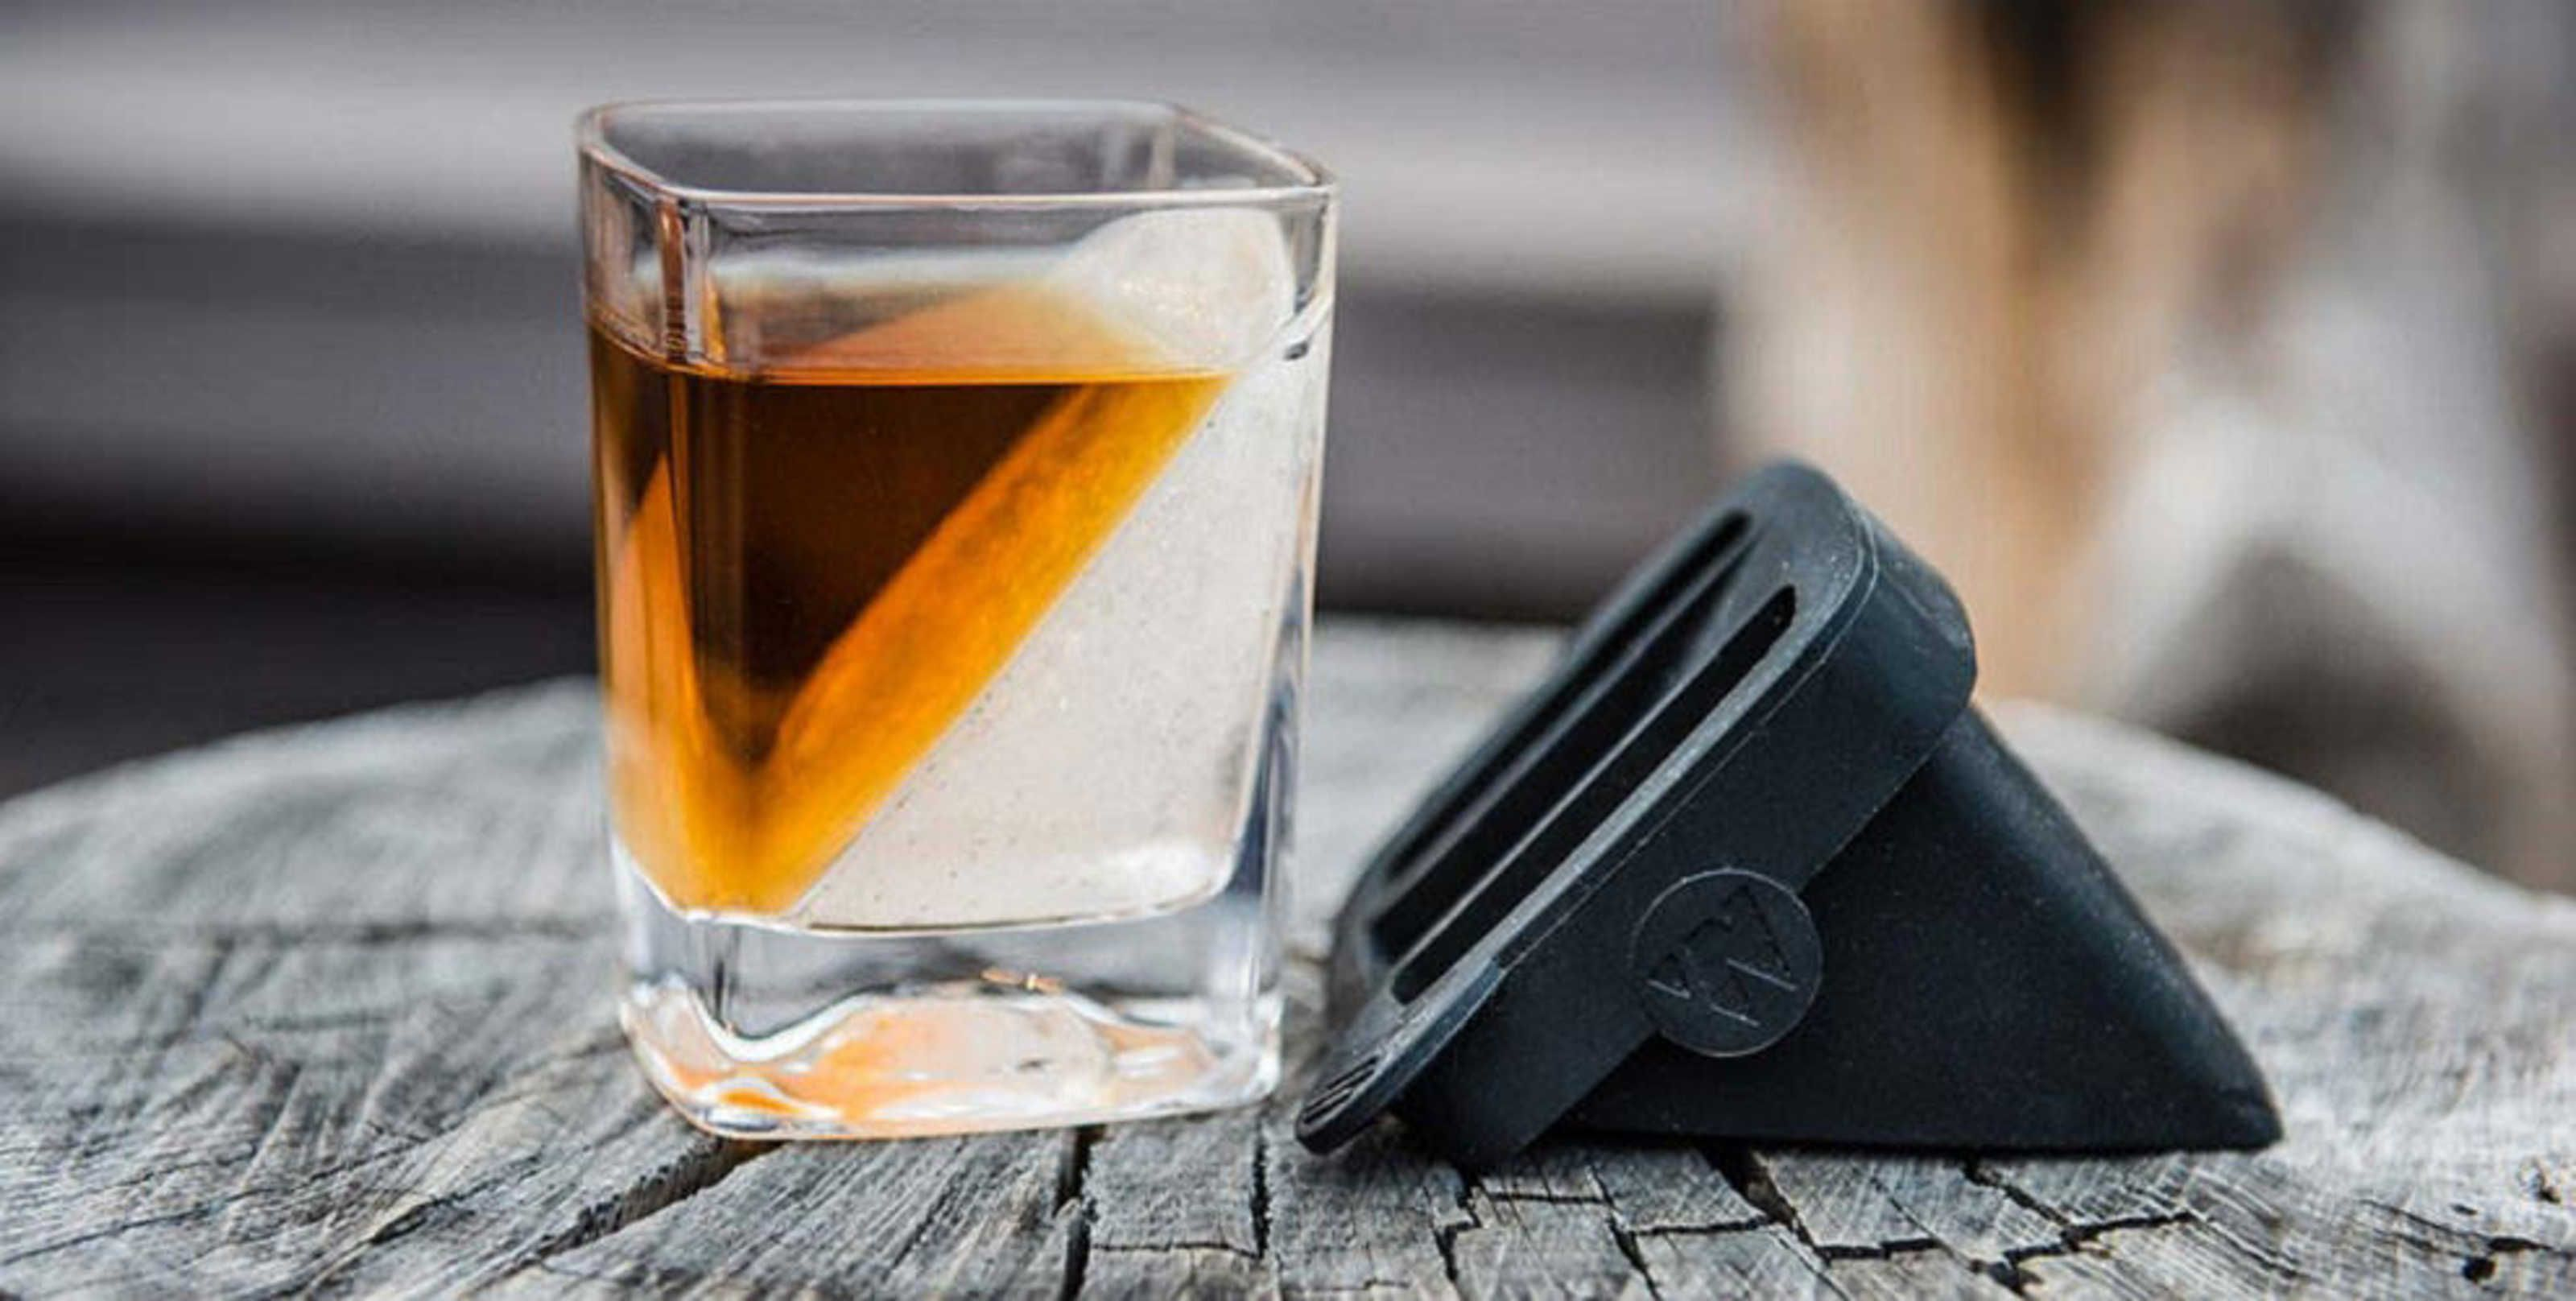 This Whiskey Ice Wedge Cools Your Drink Perfectly Without Diluting It Whiskey Wedge Wine Preserver Whiskey